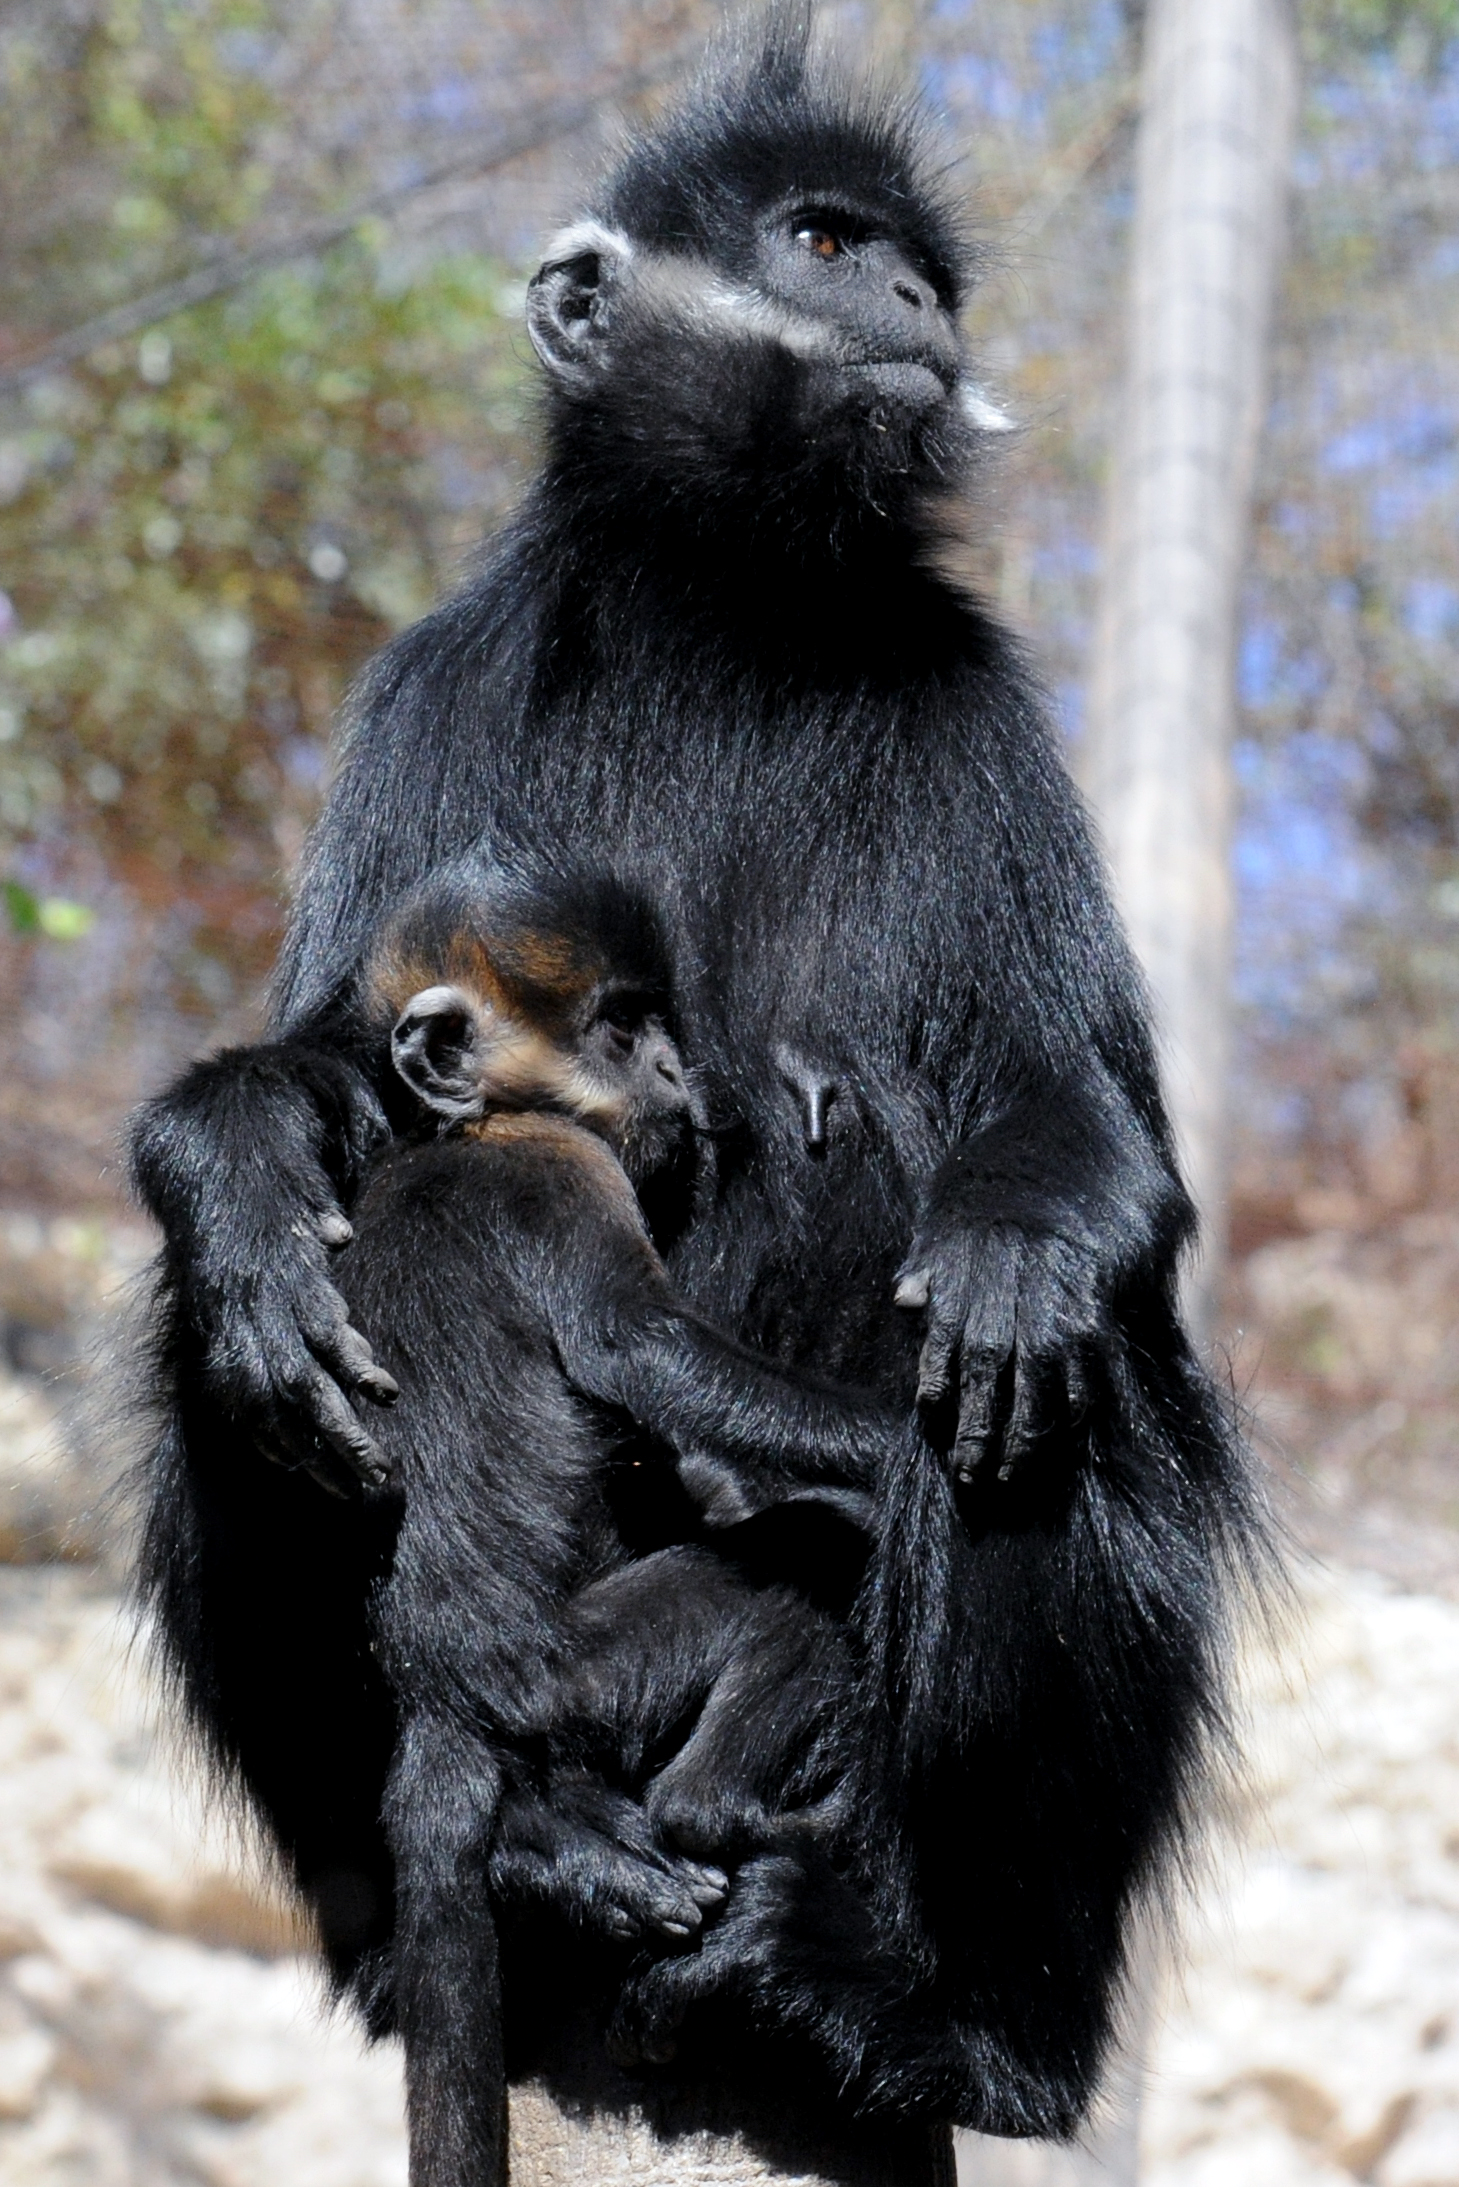 https://upload.wikimedia.org/wikipedia/commons/1/1b/Francois%27_Langur_0938.jpg